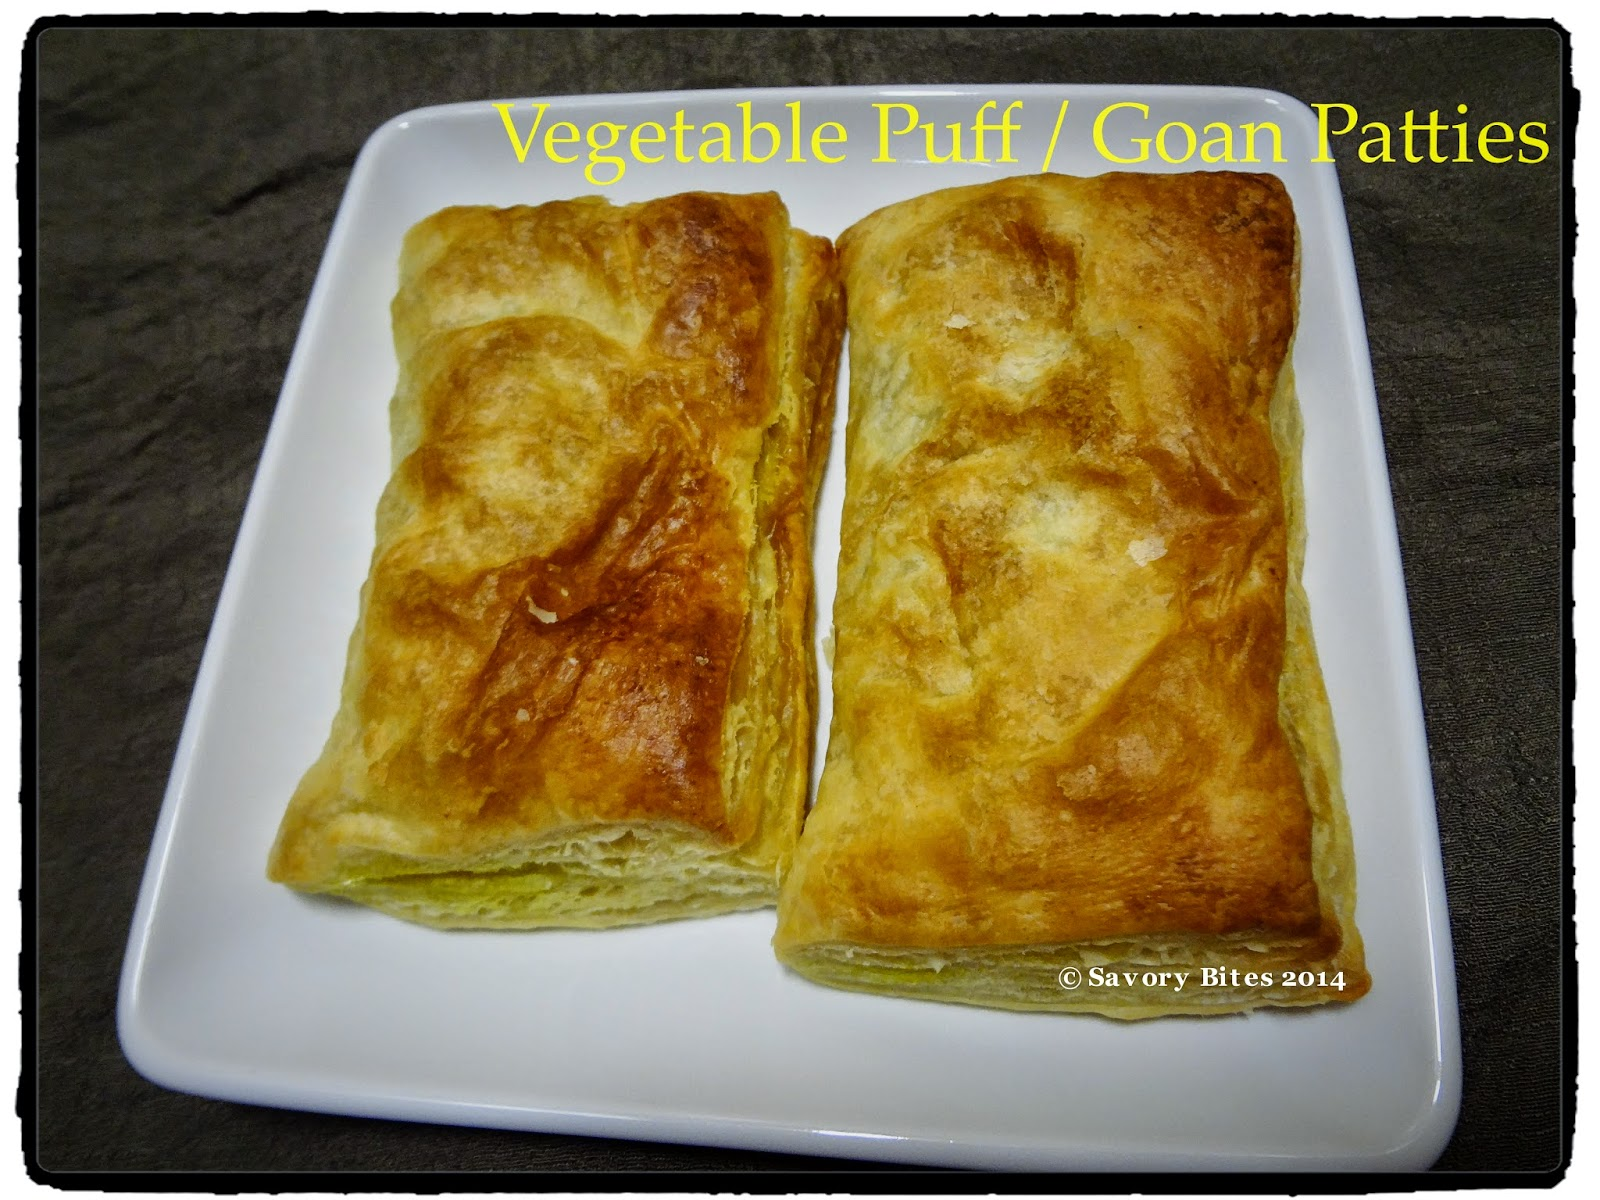 Snacks Goan Patties Vegetable Puff